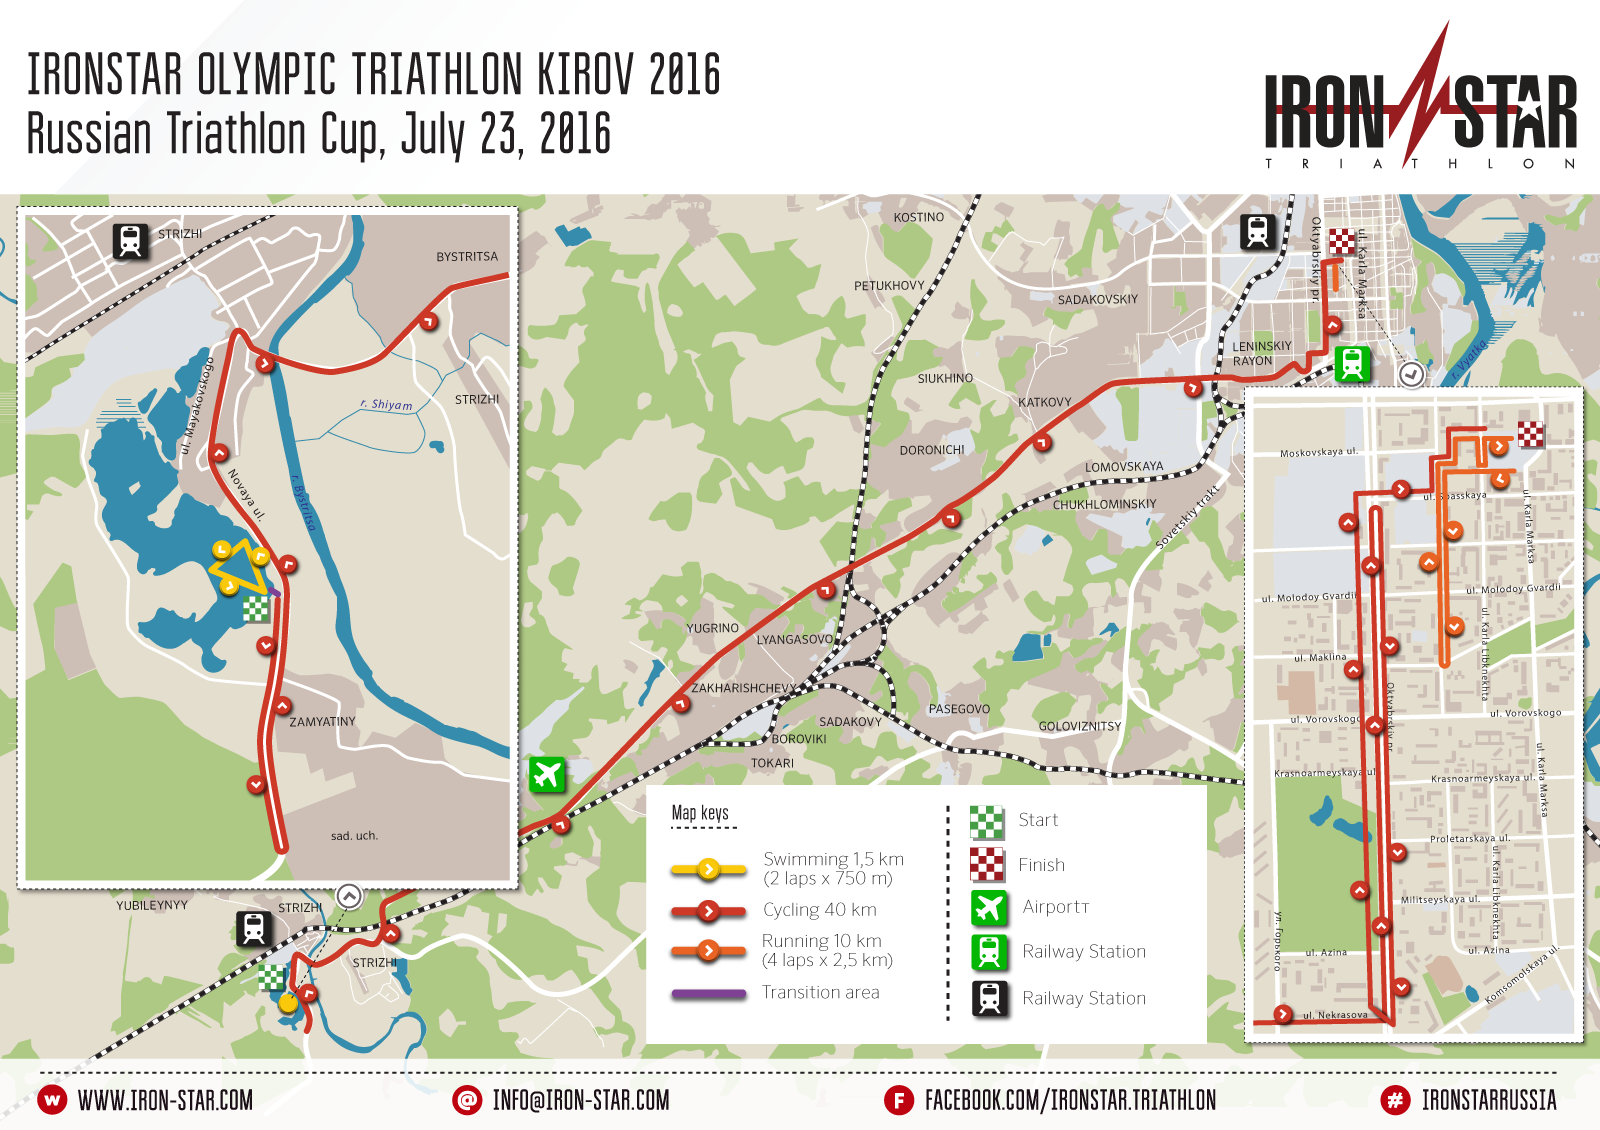 Route of IRONSTAR OLYMPIC KIROV 2016